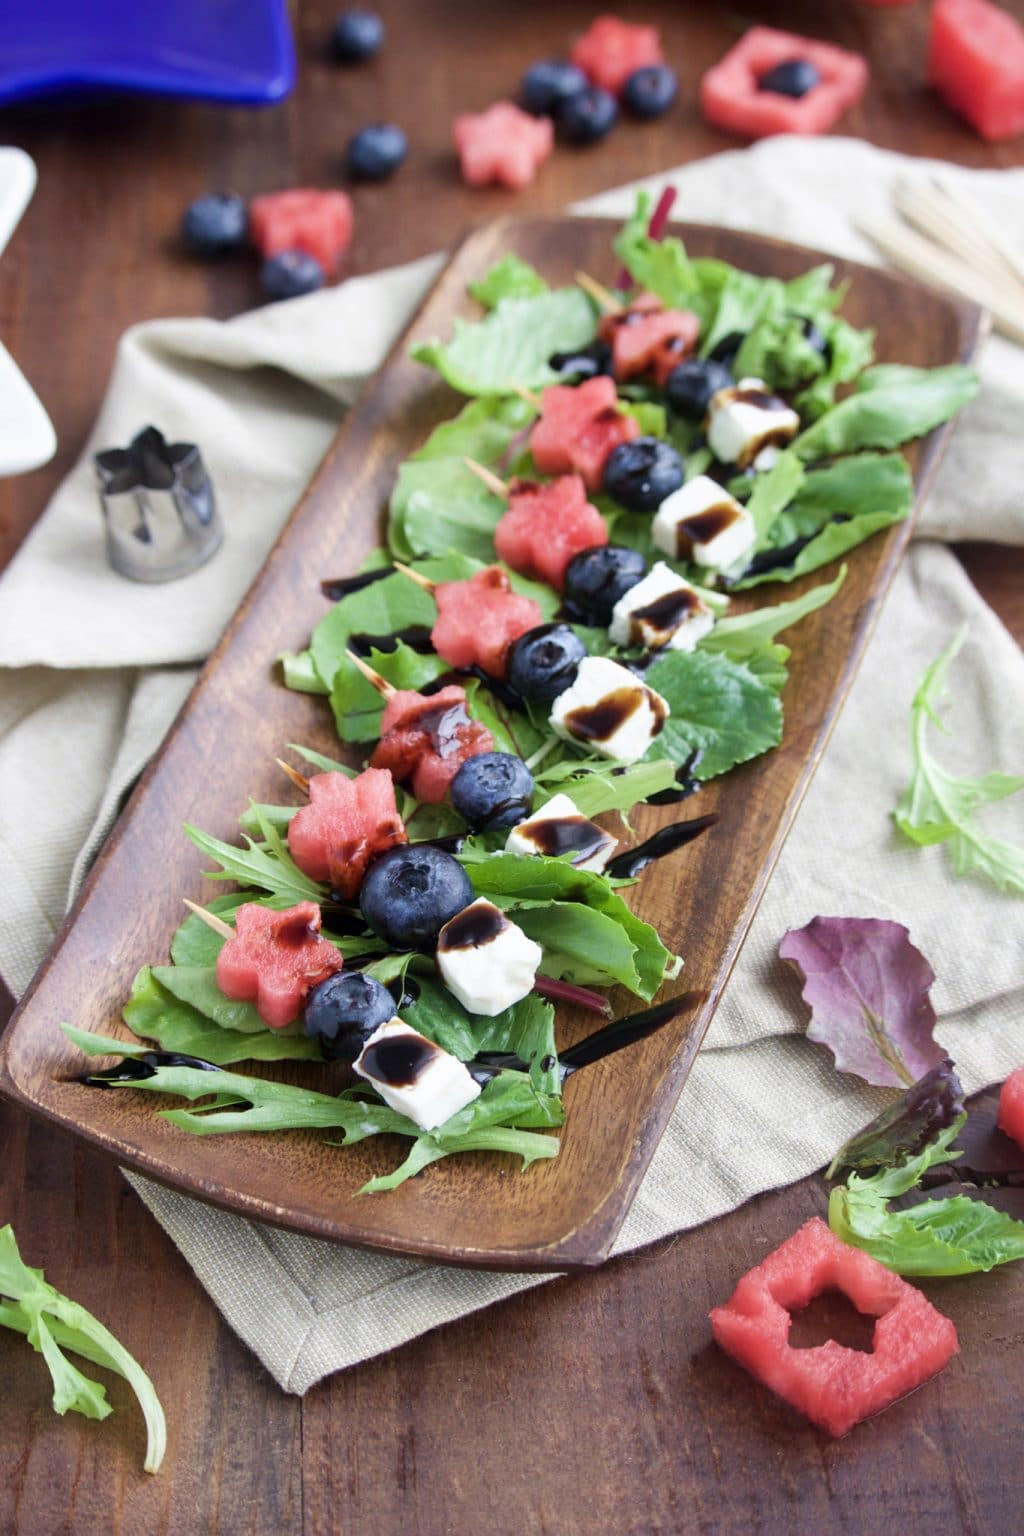 4Th Of July Appetizers Red White And Blue  5 Minute 4th of July Appetizer Star Spangled Skewers